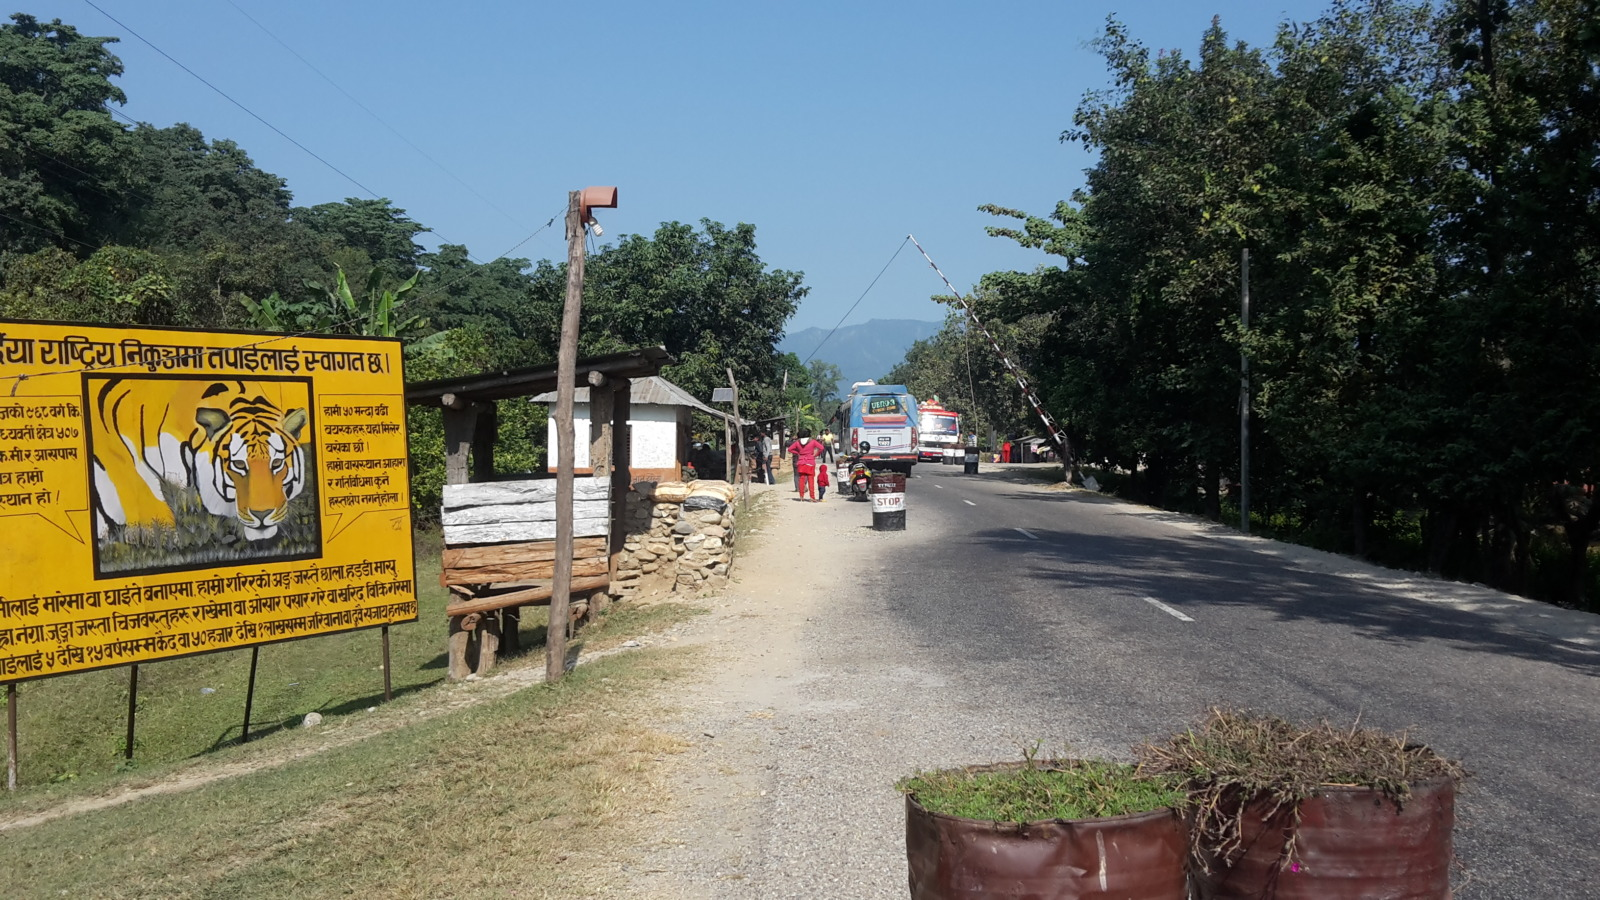 Checkpoint in Nepal